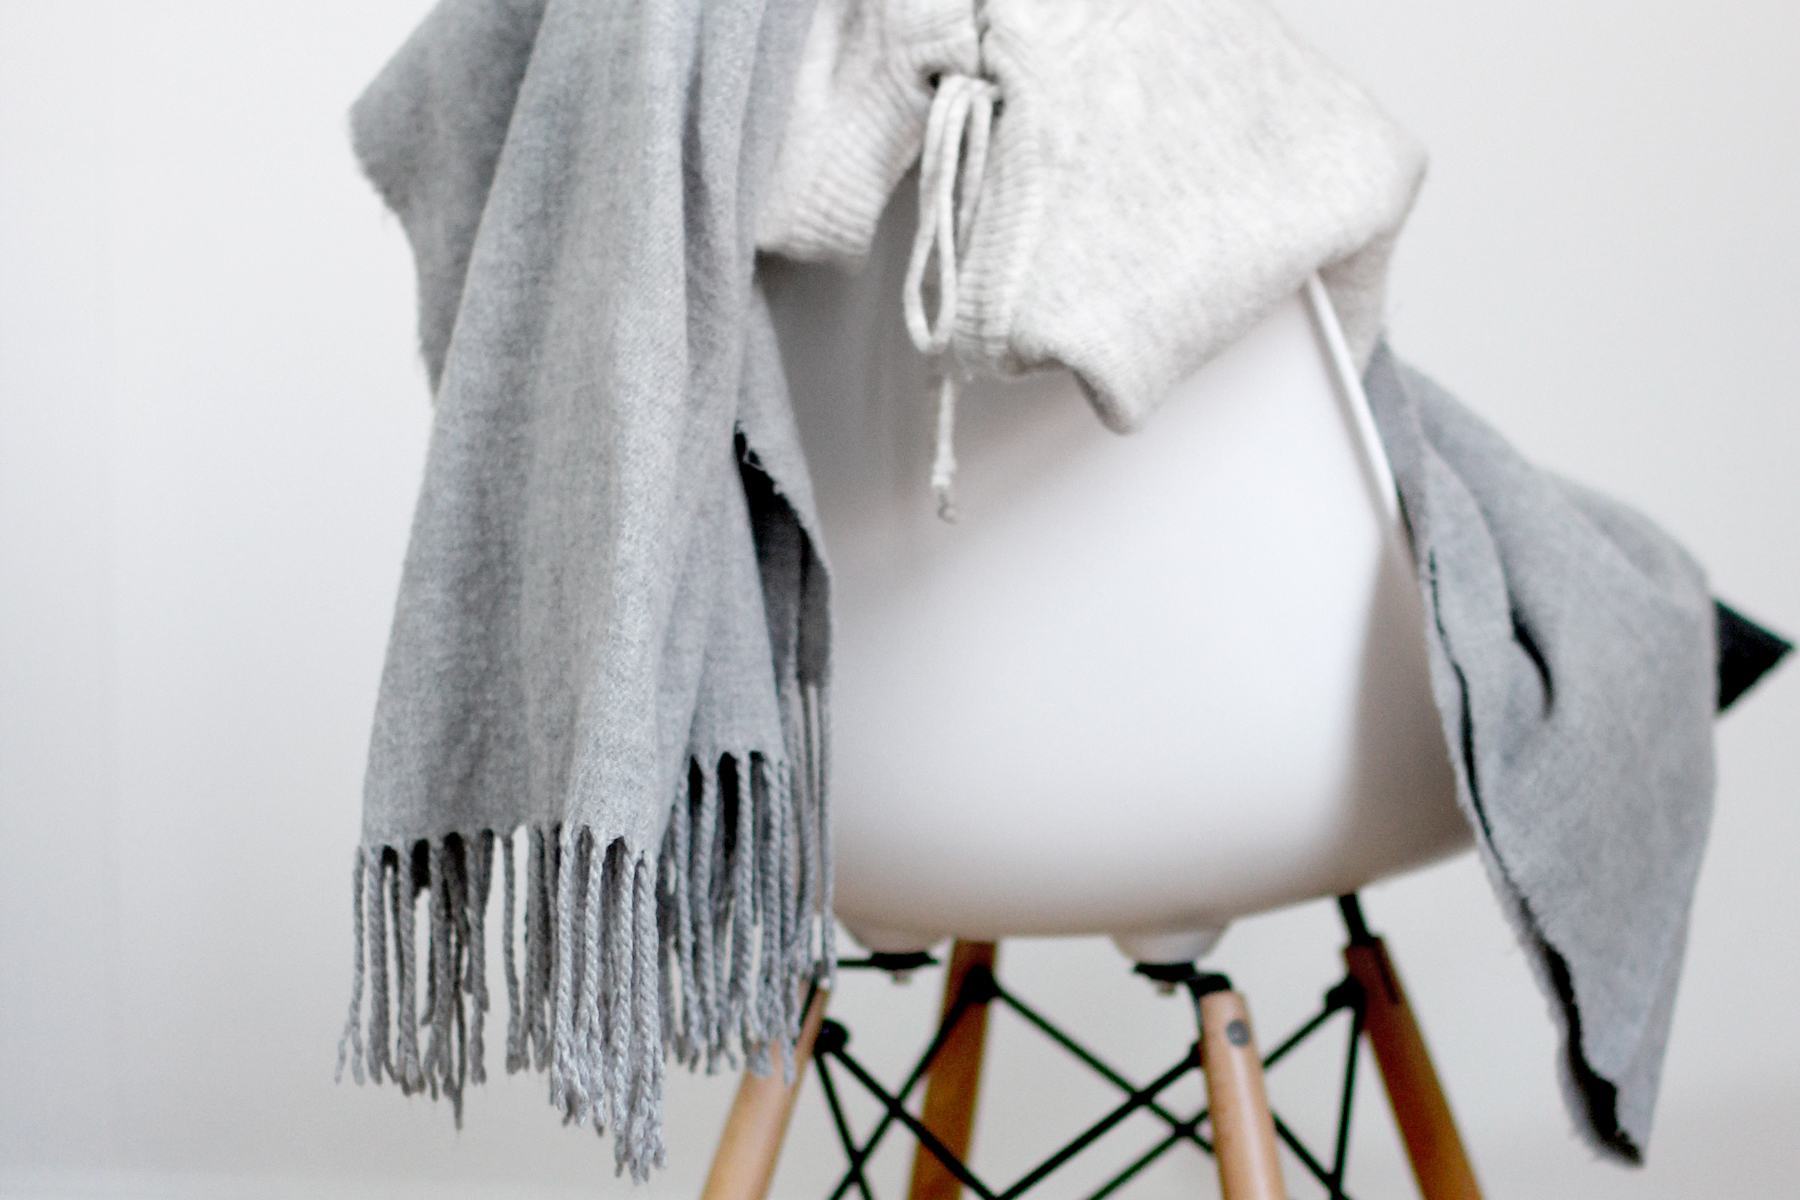 marvellous scarf favourite item grey cozy wool home story lenor weichspüler pflege care product conditioner accessory cute winter fashion blogger cats & dogs ricarda schernus 2